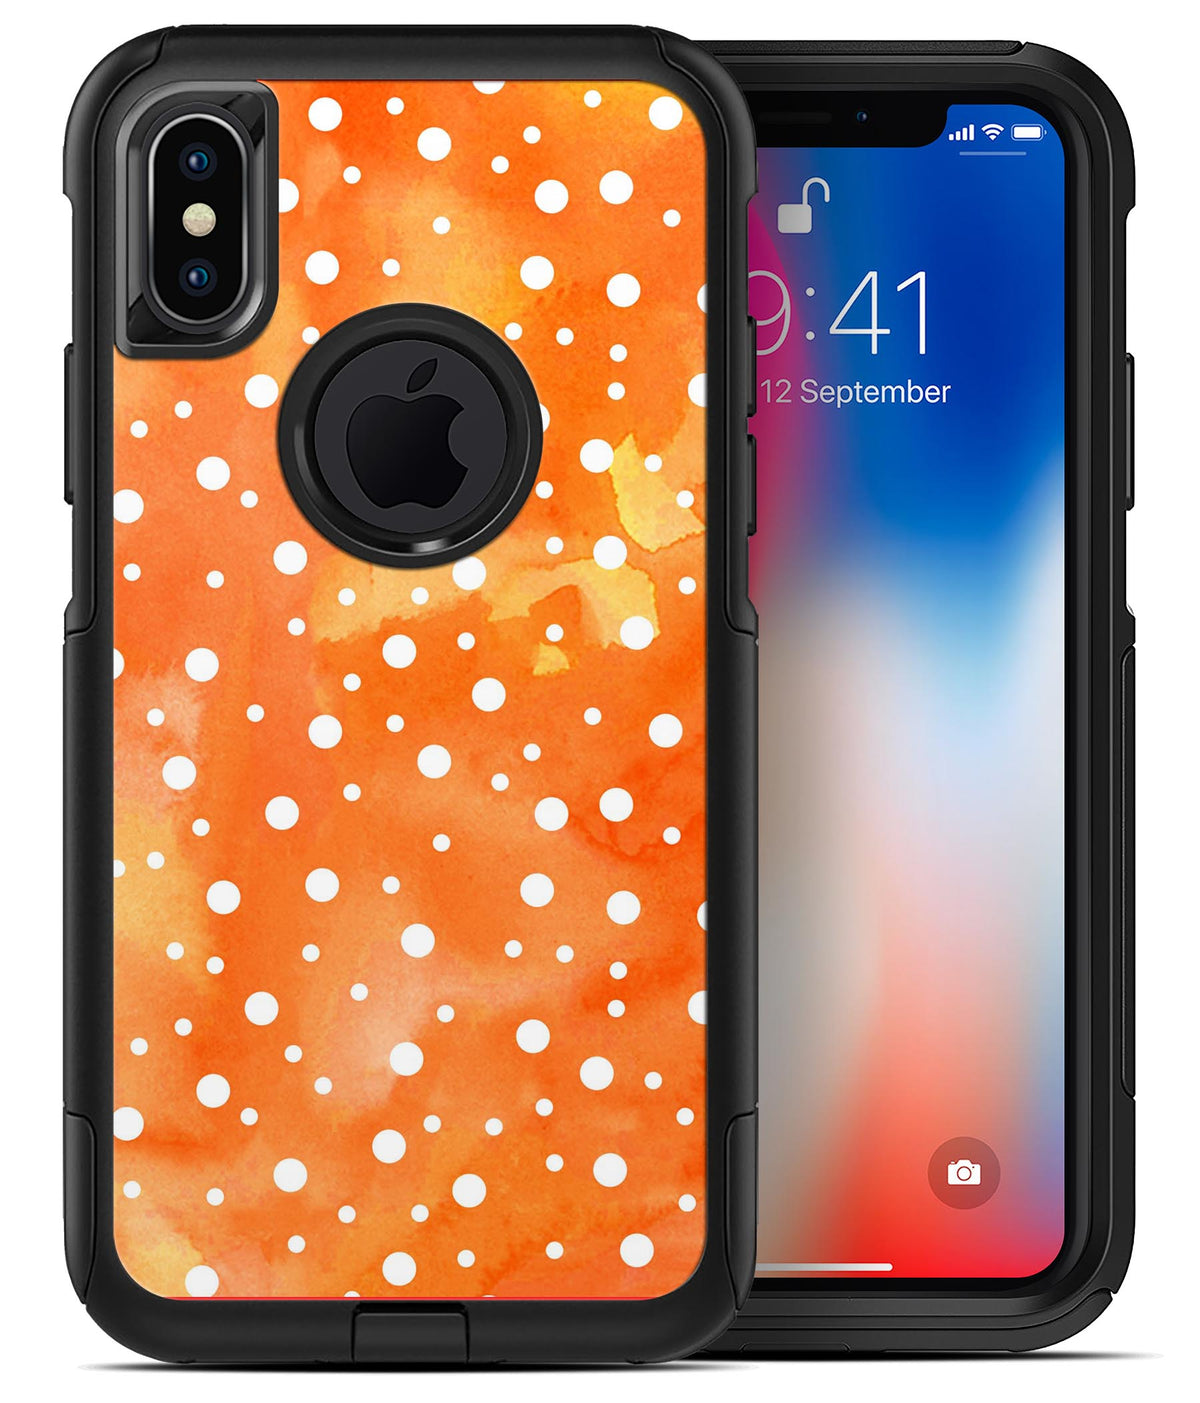 White Polka Dots Over Orange Watercolor Grunge Iphone X Otterbox Commuter For Black Case Skin Kits